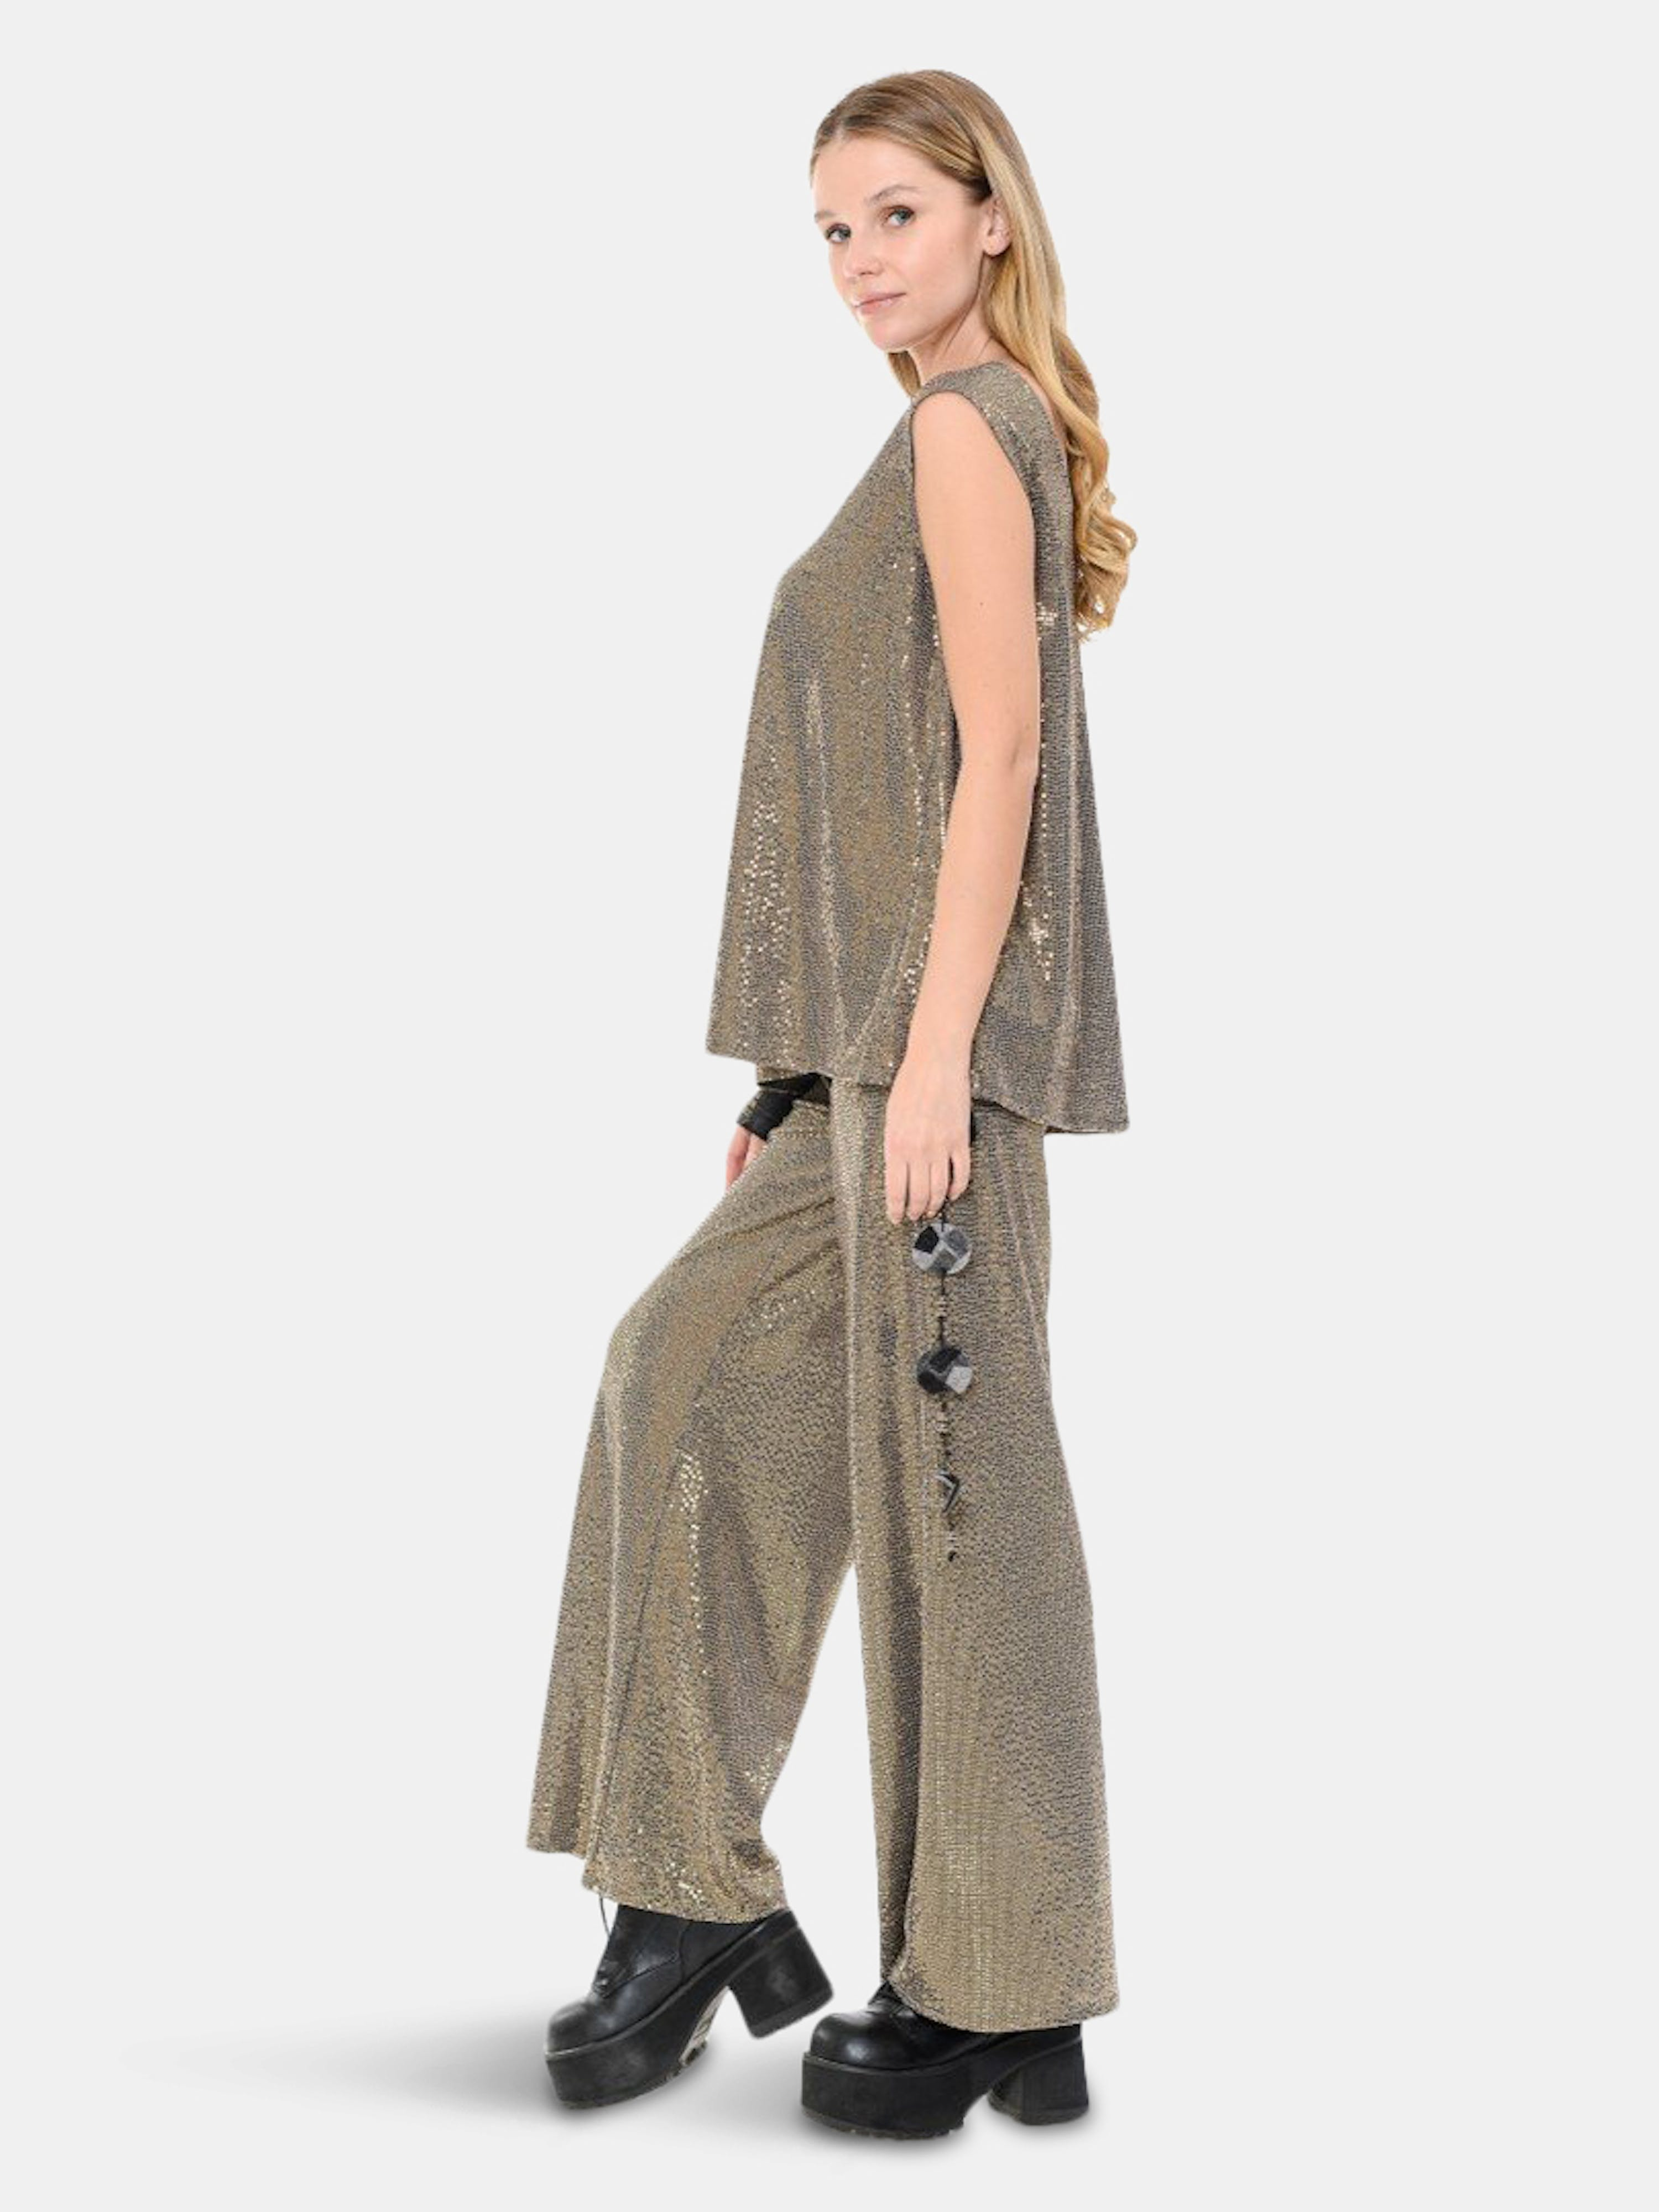 Rt Designs Sequins Palazzo Pant In Brown